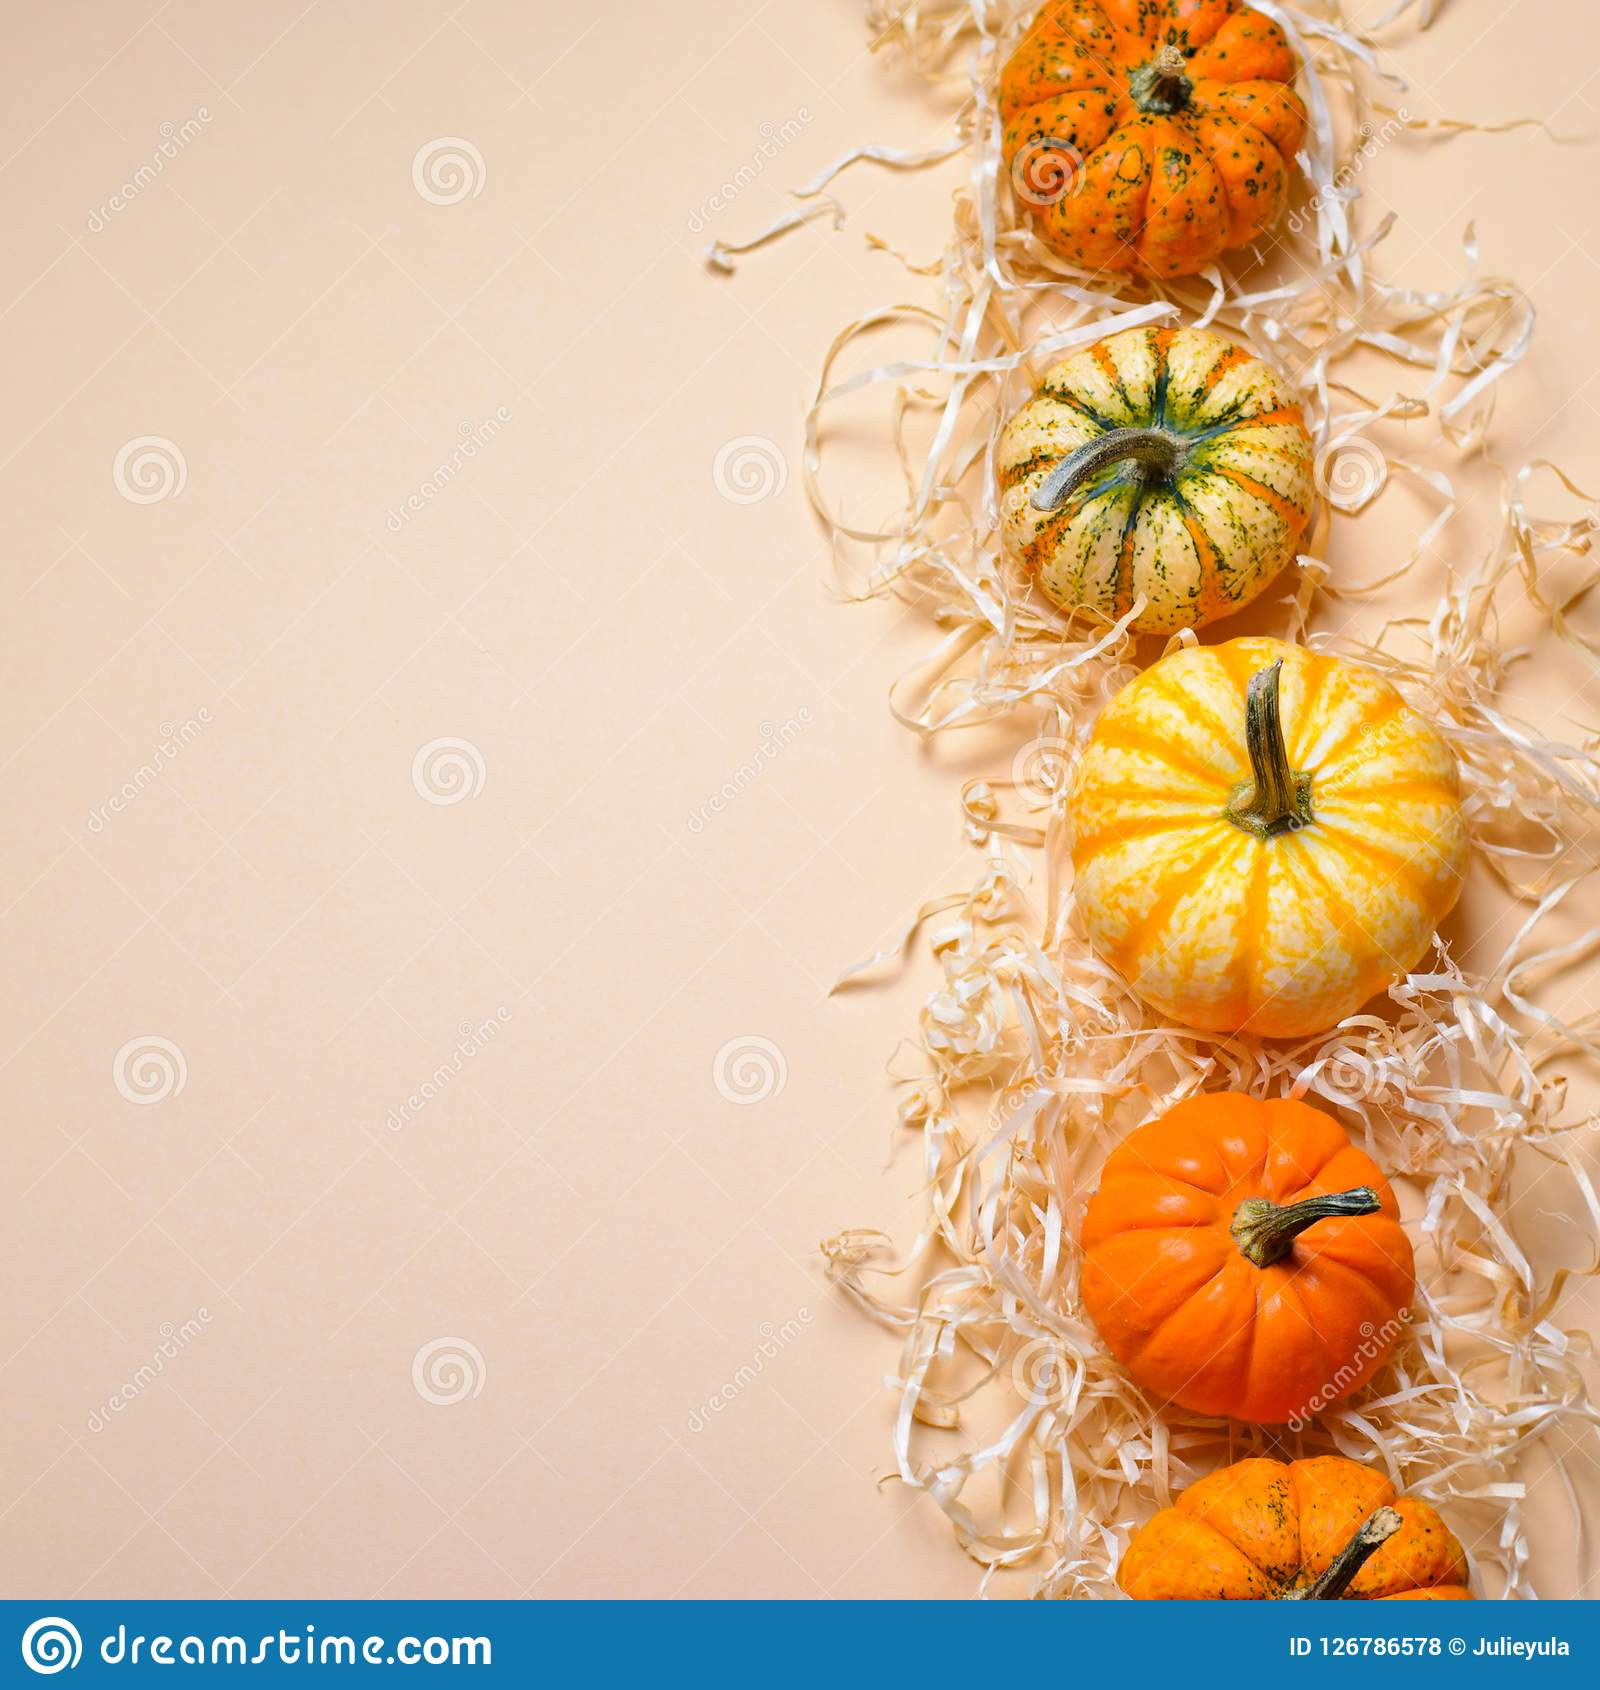 Different Colorful Pumpkins, Autumn Thanksgiving and Halloween Background. Different Colorful Pumpkins on Straw, Autumn Thanksgiving and Halloween Background Royalty Free Stock Photos